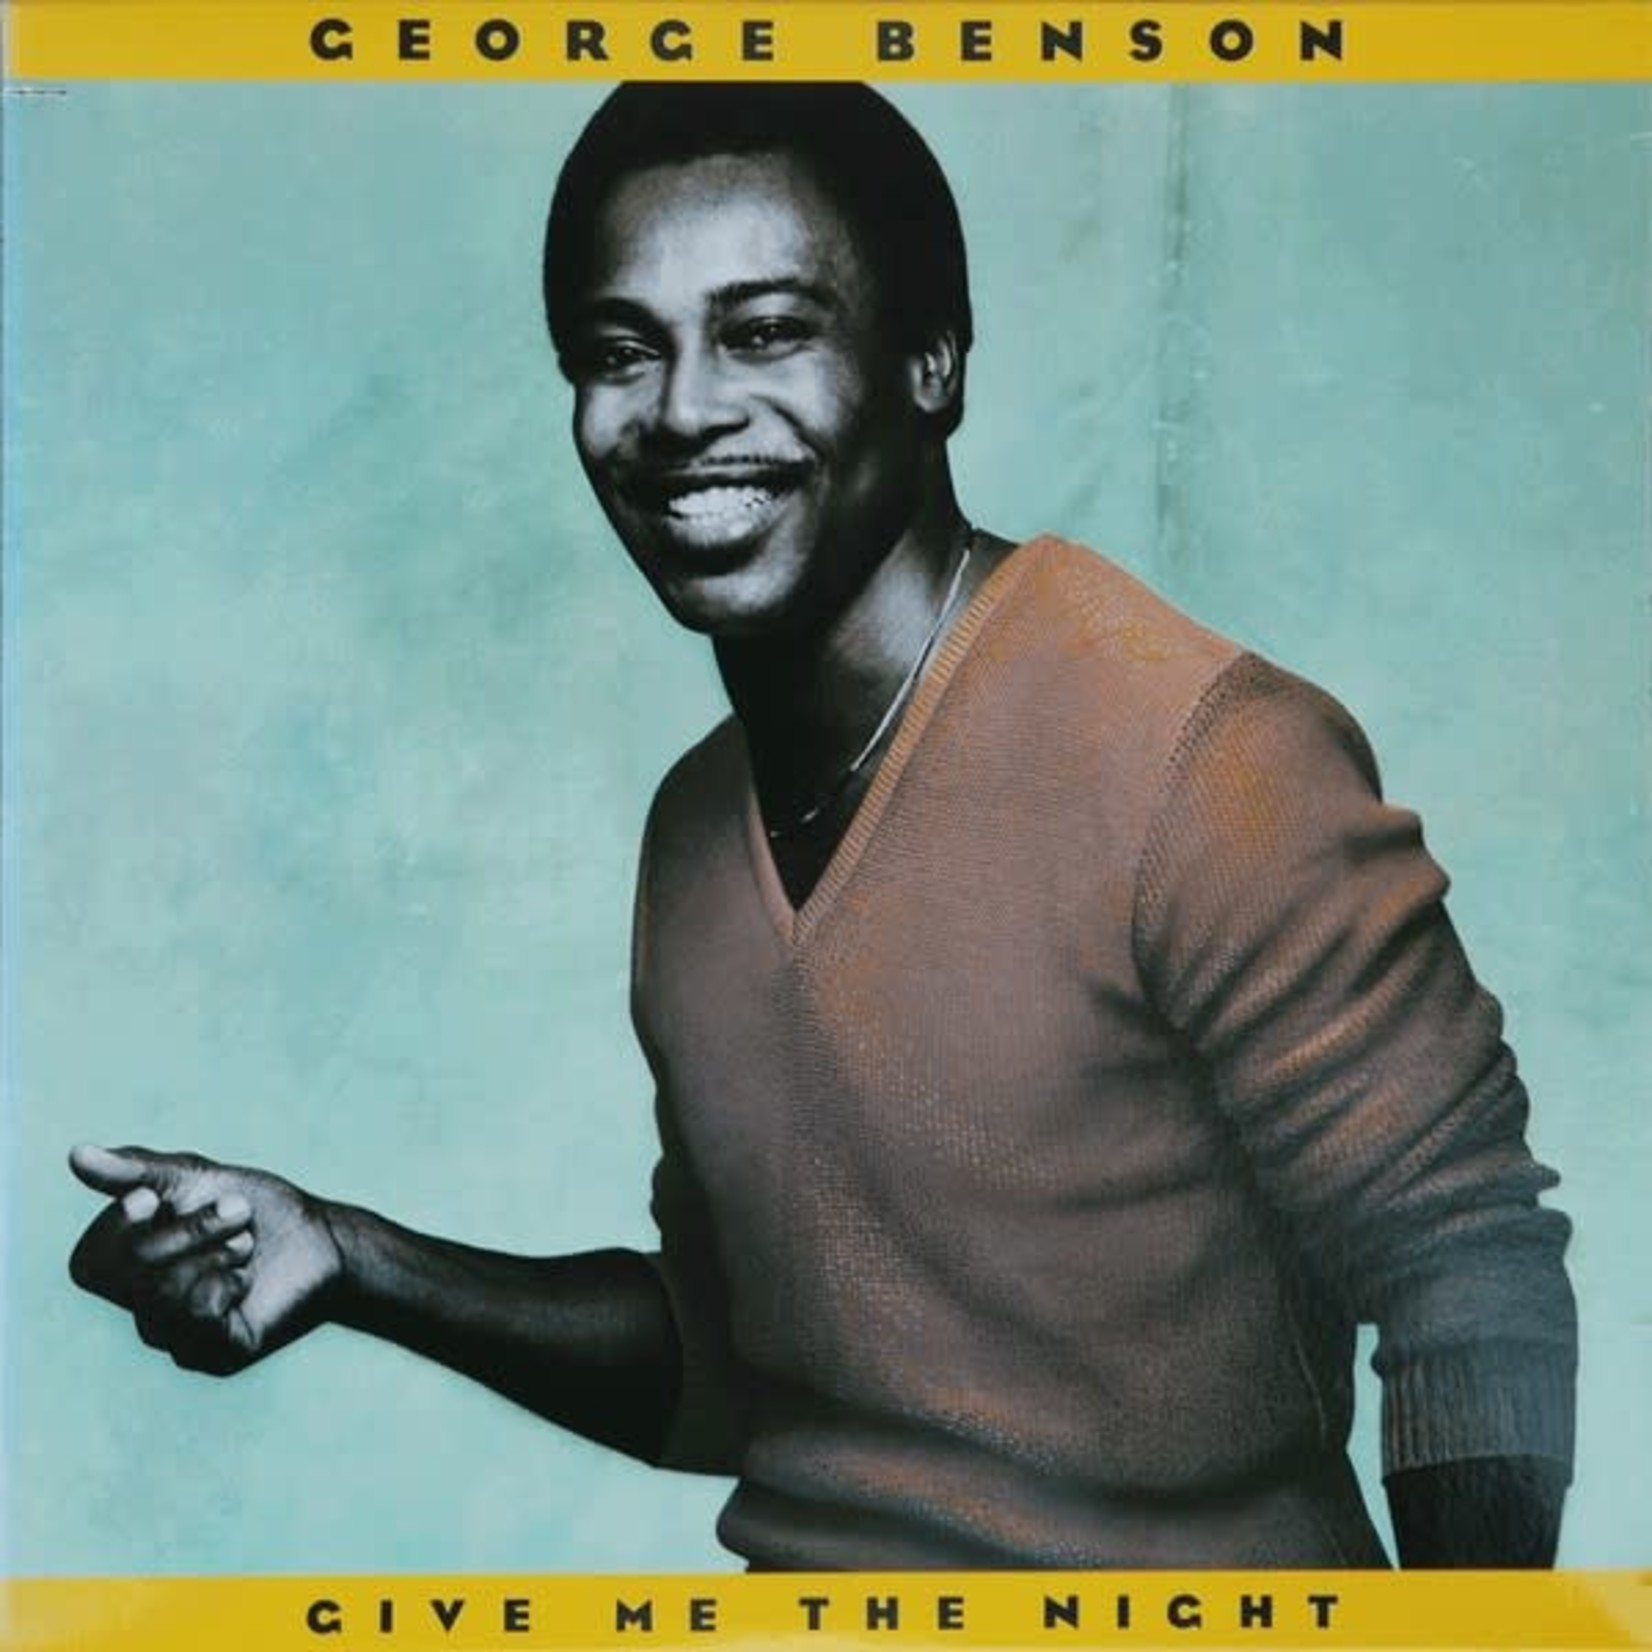 [Vintage] Benson, George: Give Me the Night